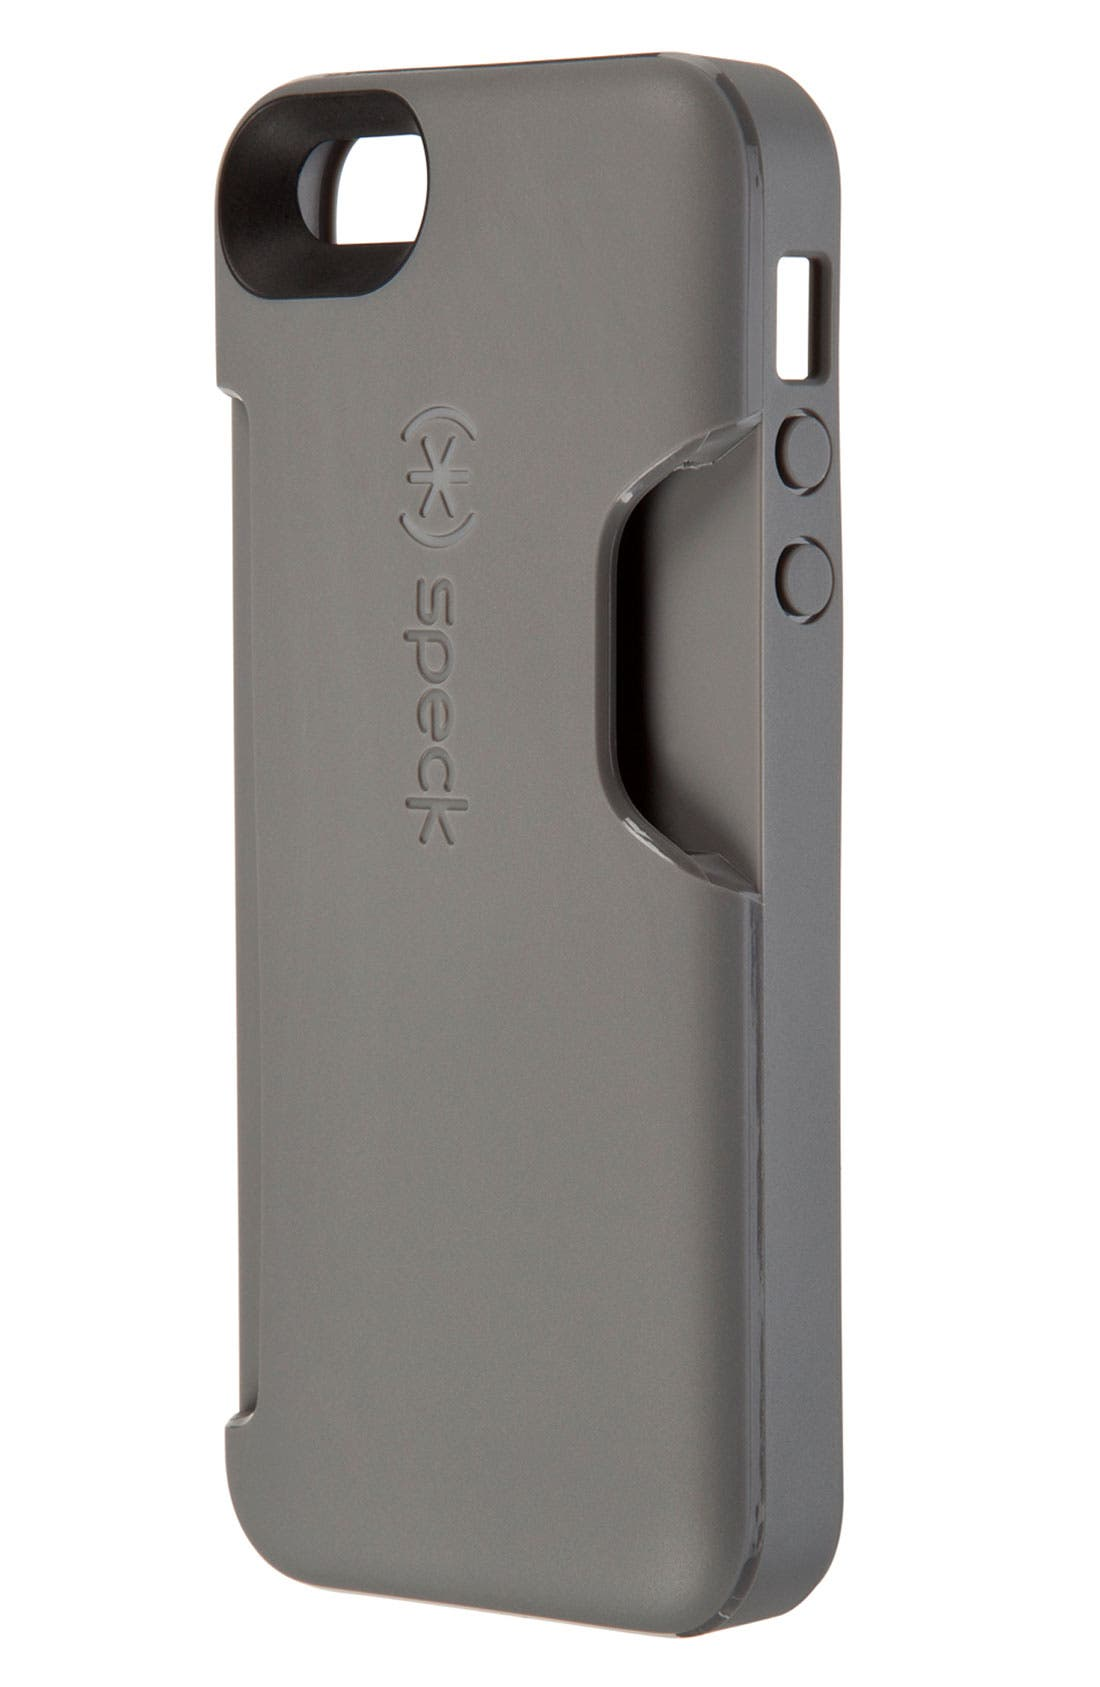 Main Image - Speck 'SmartFlex Card' iPhone 5 Case